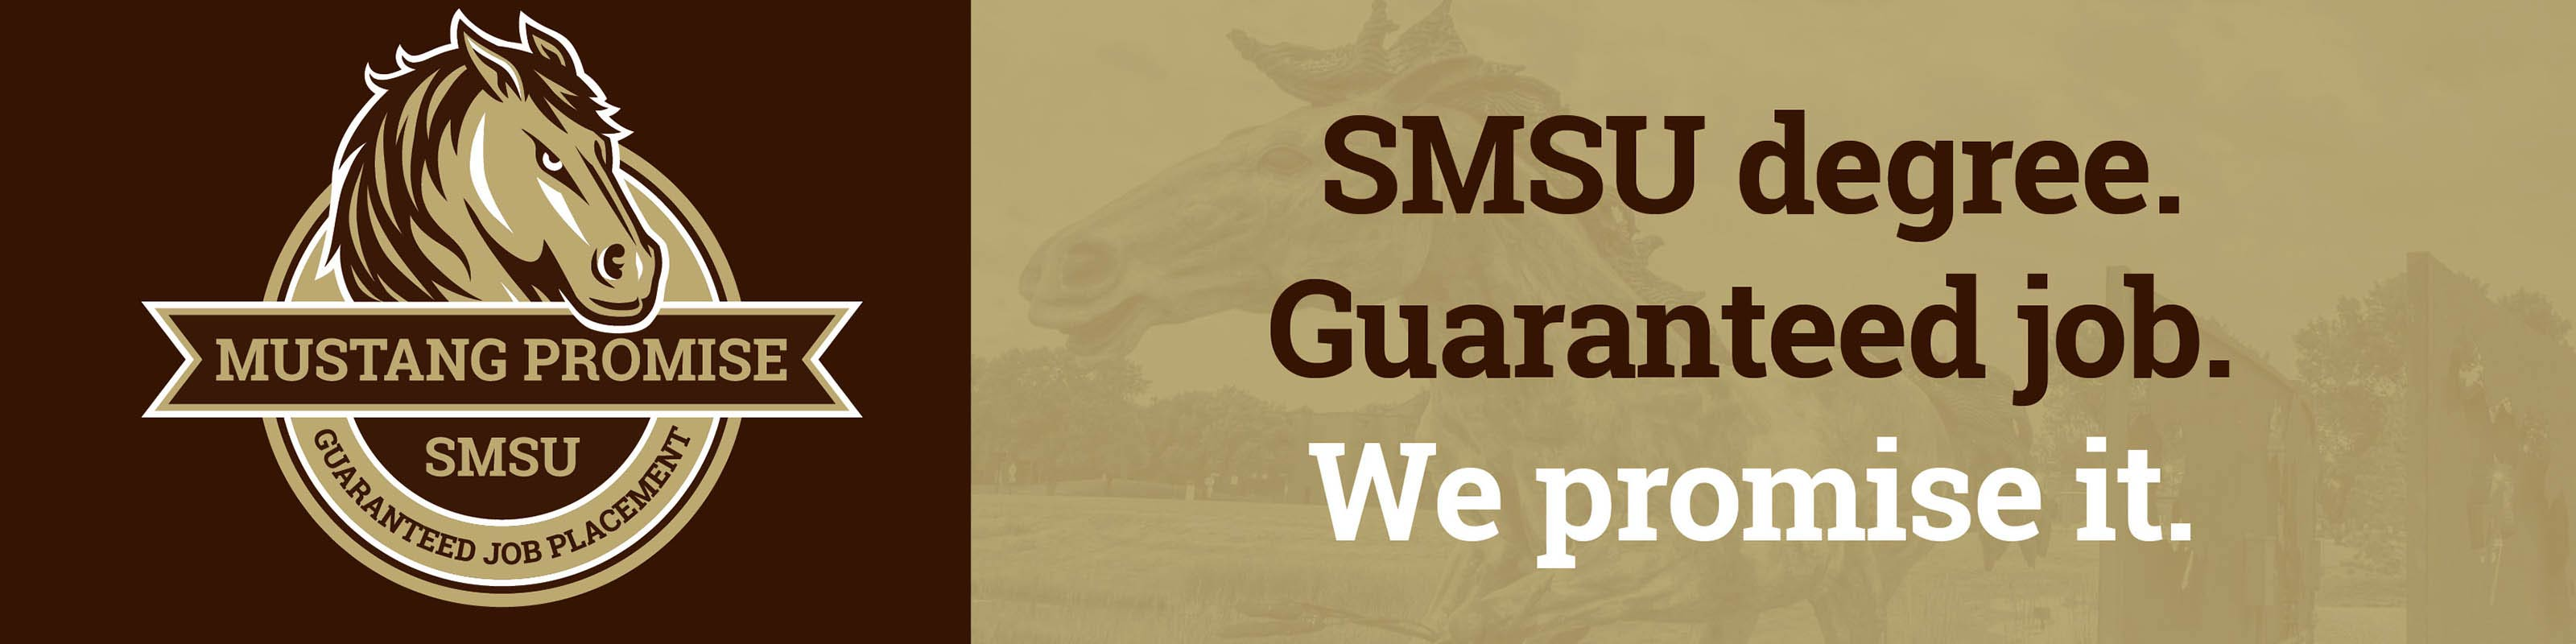 SMSU MUSTANG PROMISE - GUARANTEED JOB PLACEMENT - SMSU degree. Guaranteed job. We promise it.